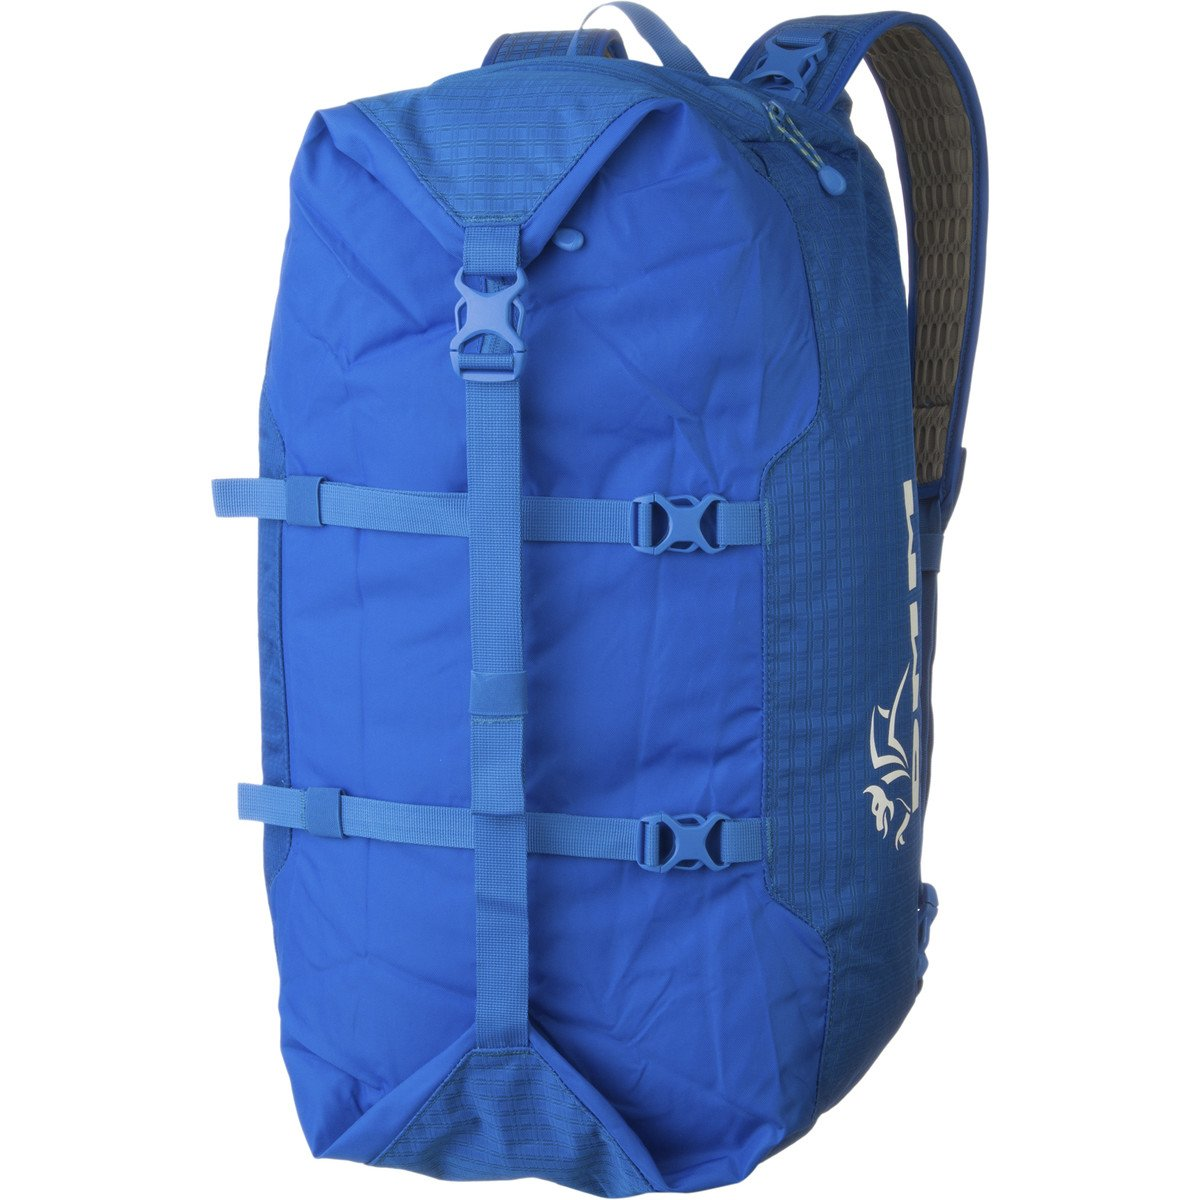 DMM Classic Rope Bag (Blue) V12 OUTDOOR